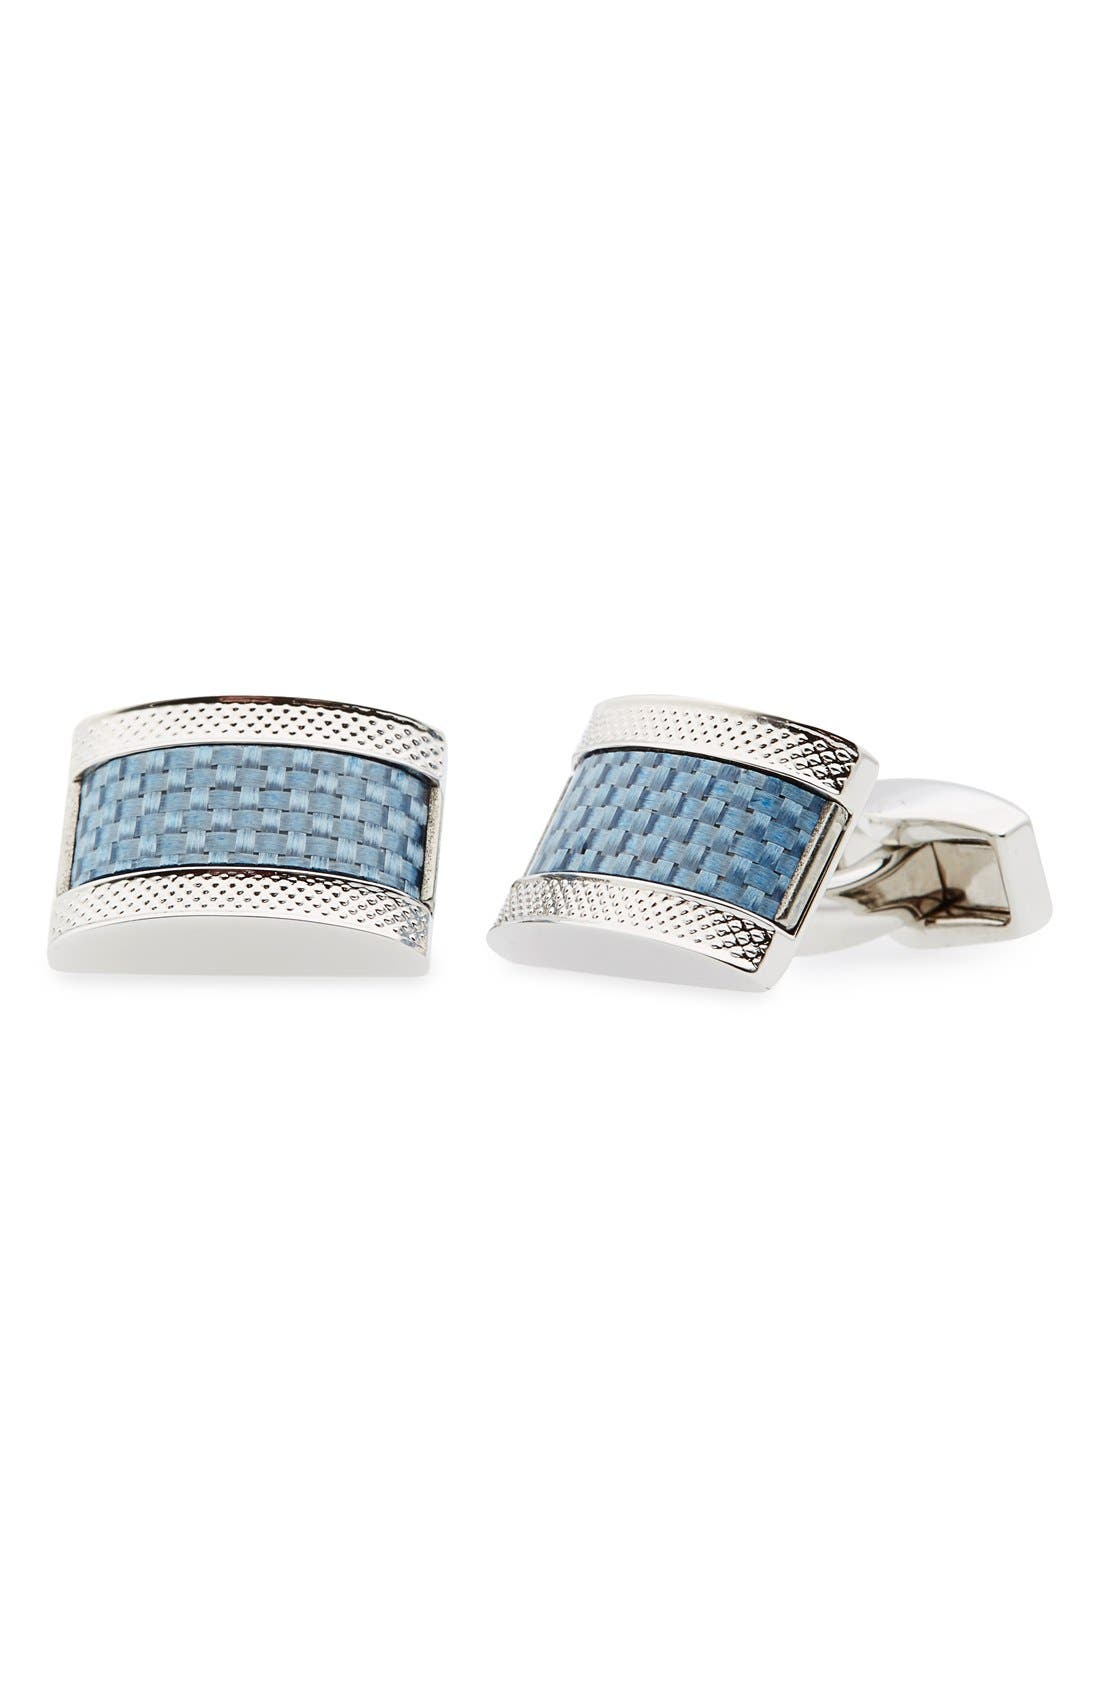 Carbon Fiber Cuff Links,                             Main thumbnail 1, color,                             BLUE